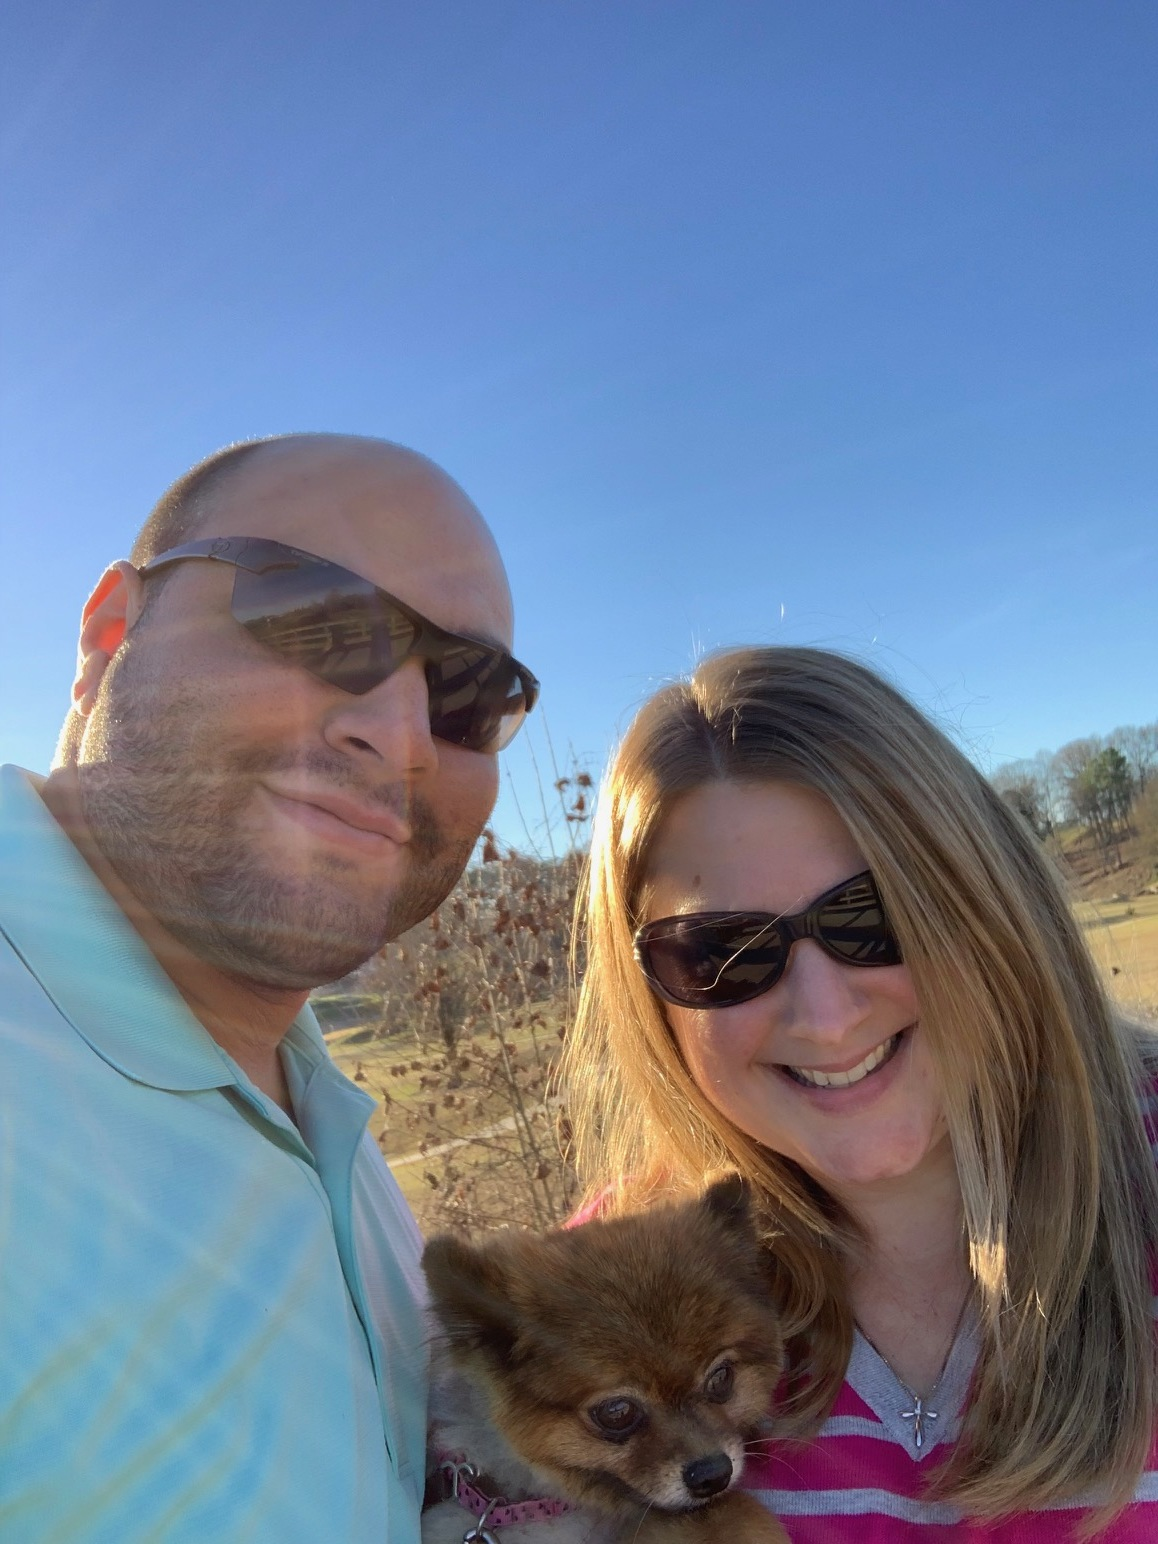 My husband and I with our Pomeranian, Daisy.